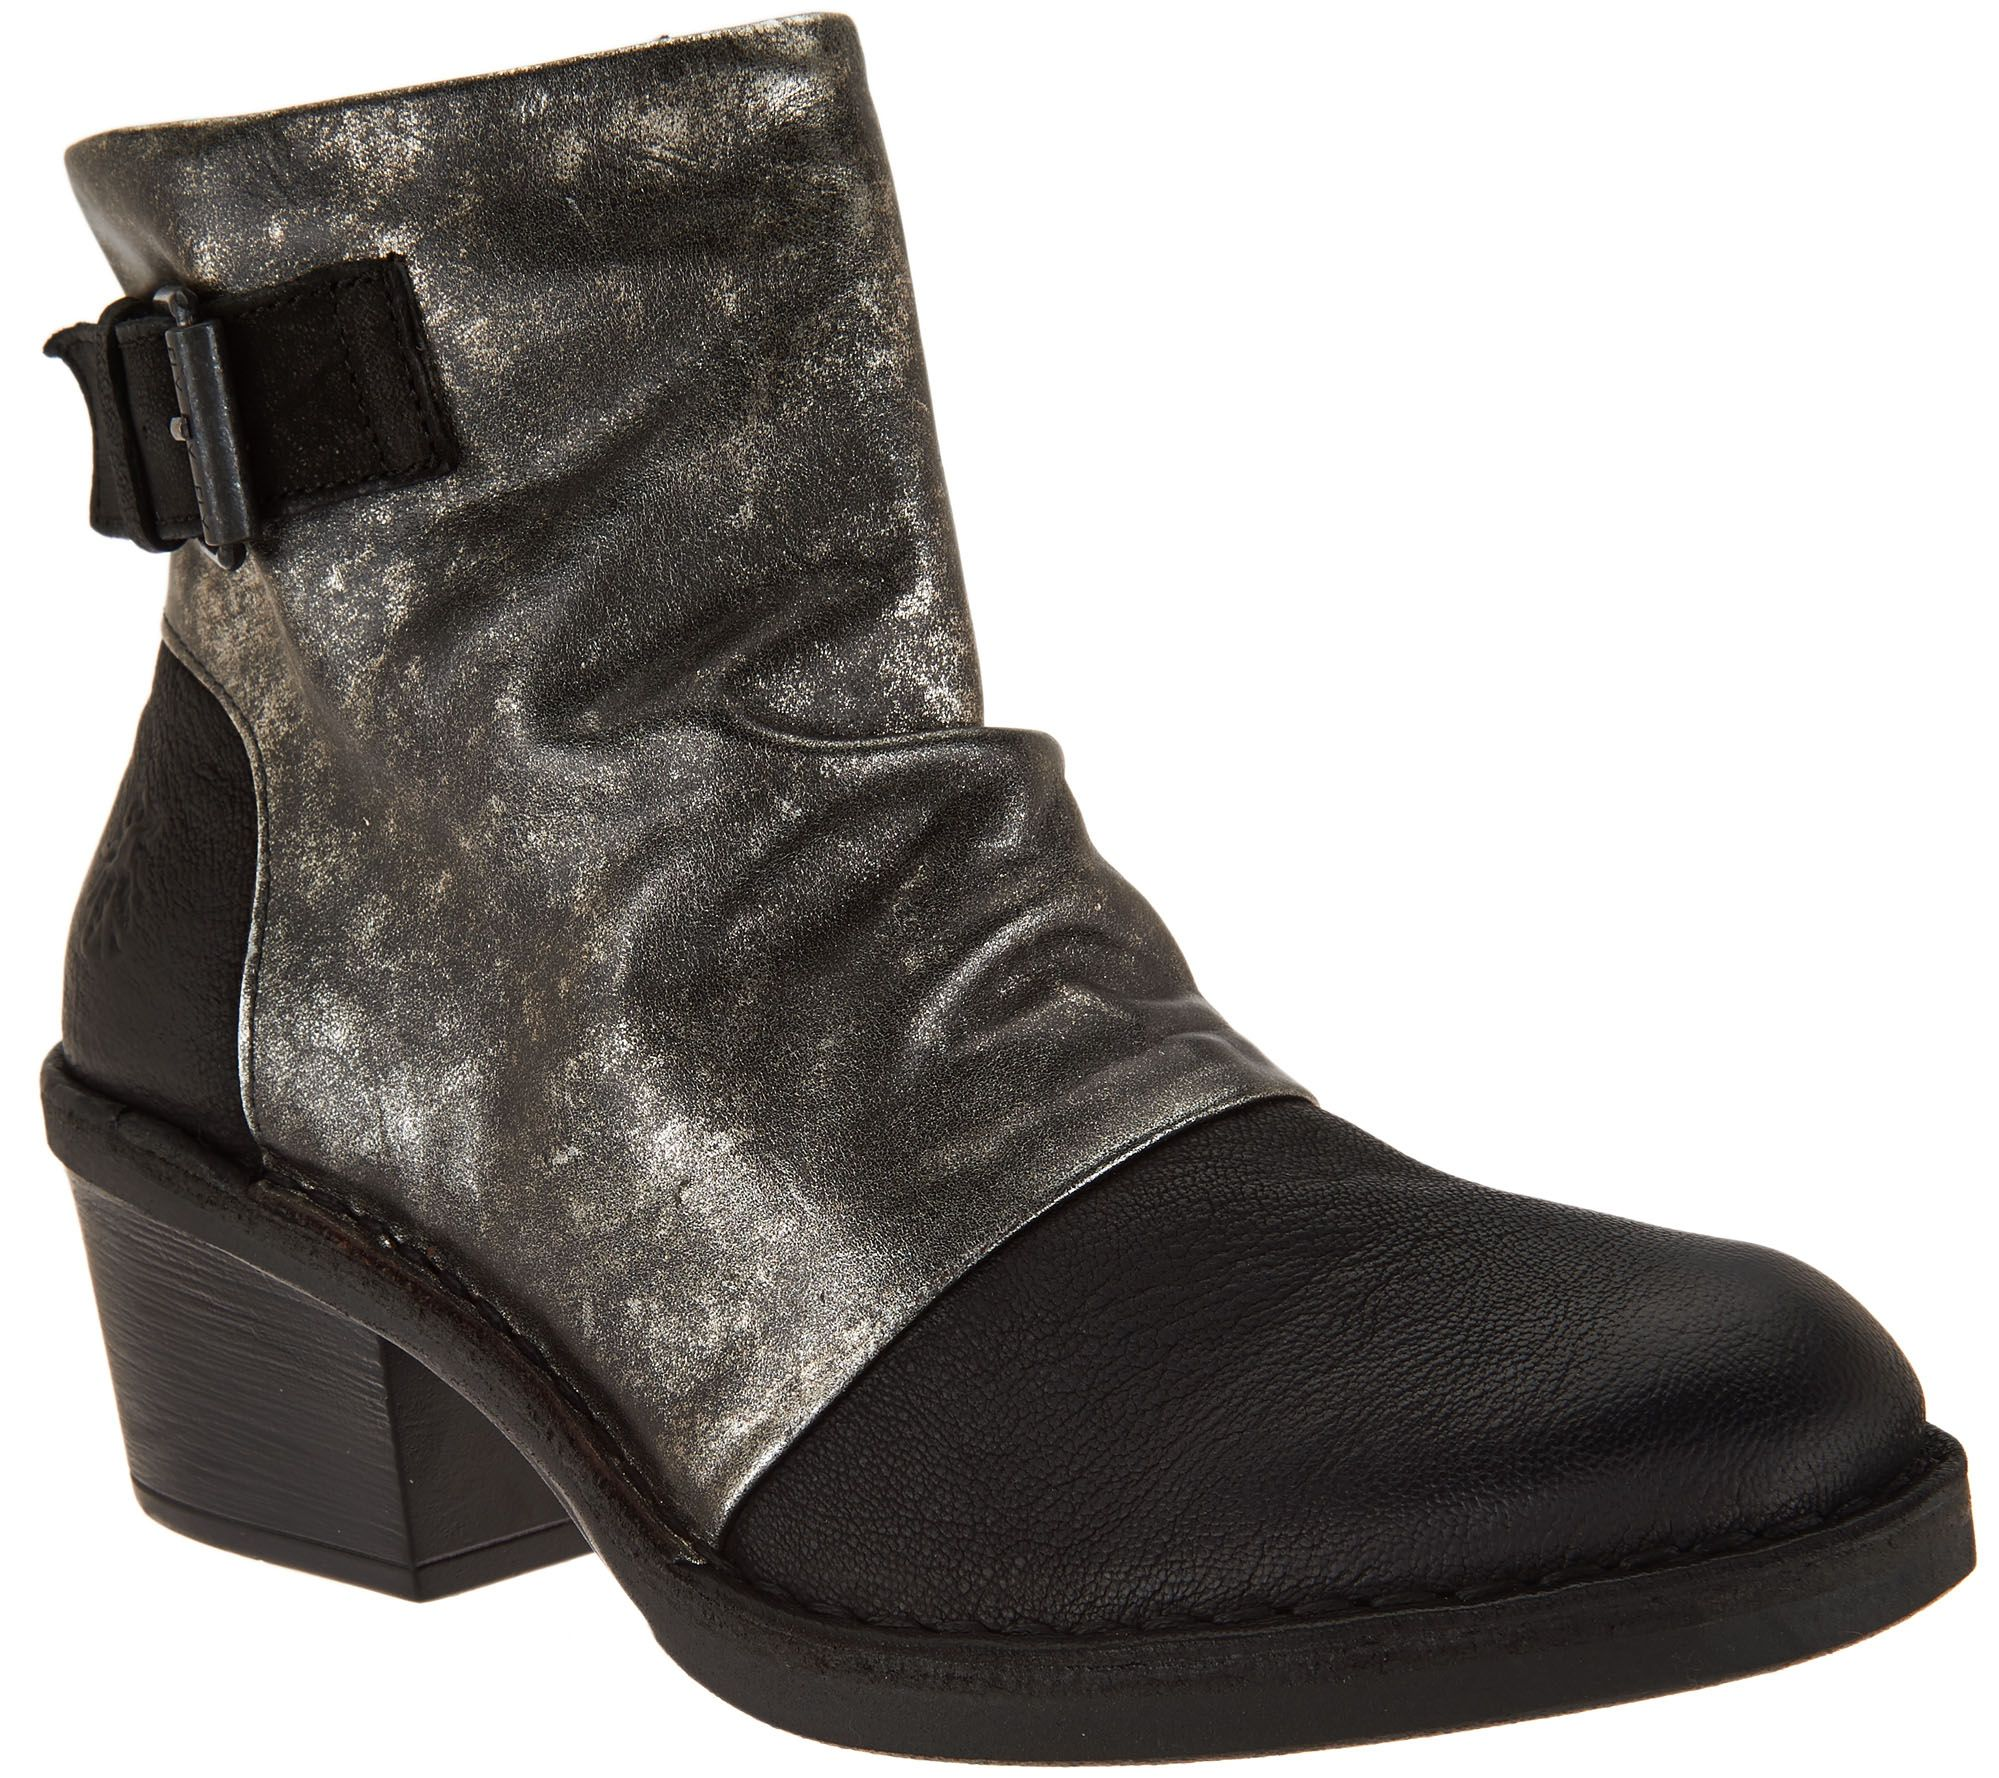 7a2d64760879 FLY London Leather Block Heel Boots - Dape - Page 1 — QVC.com